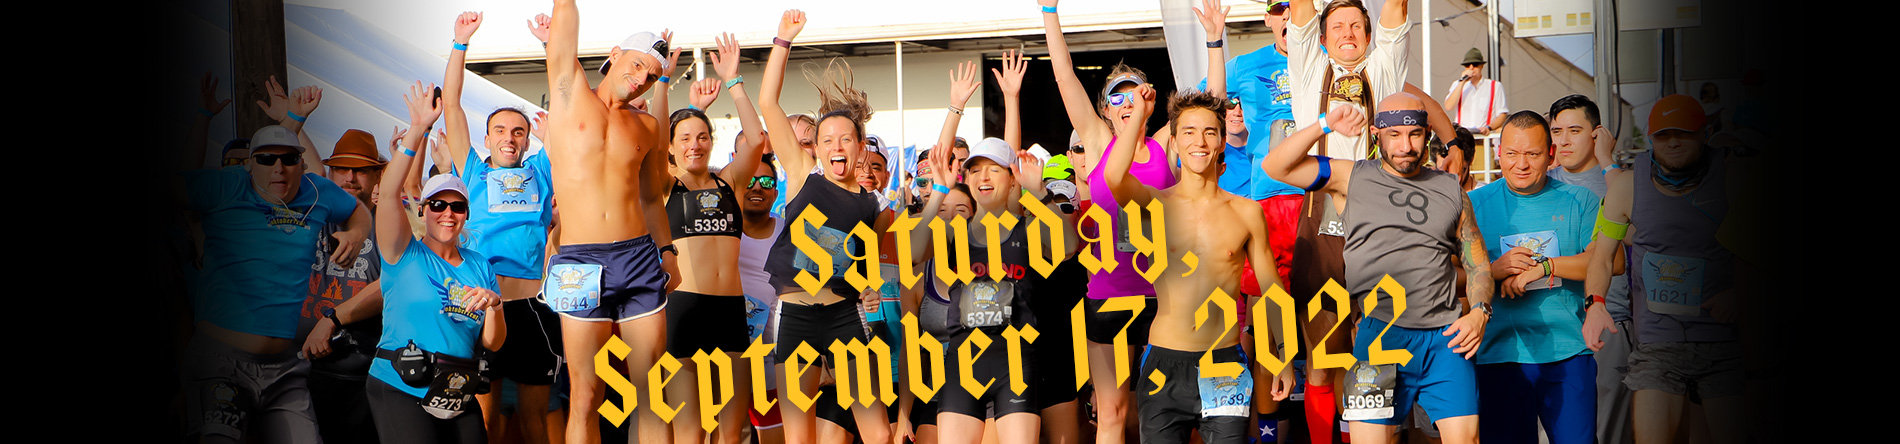 Oktoberfest Fort Worth – Rahr & Sons Oktoberfest 5K